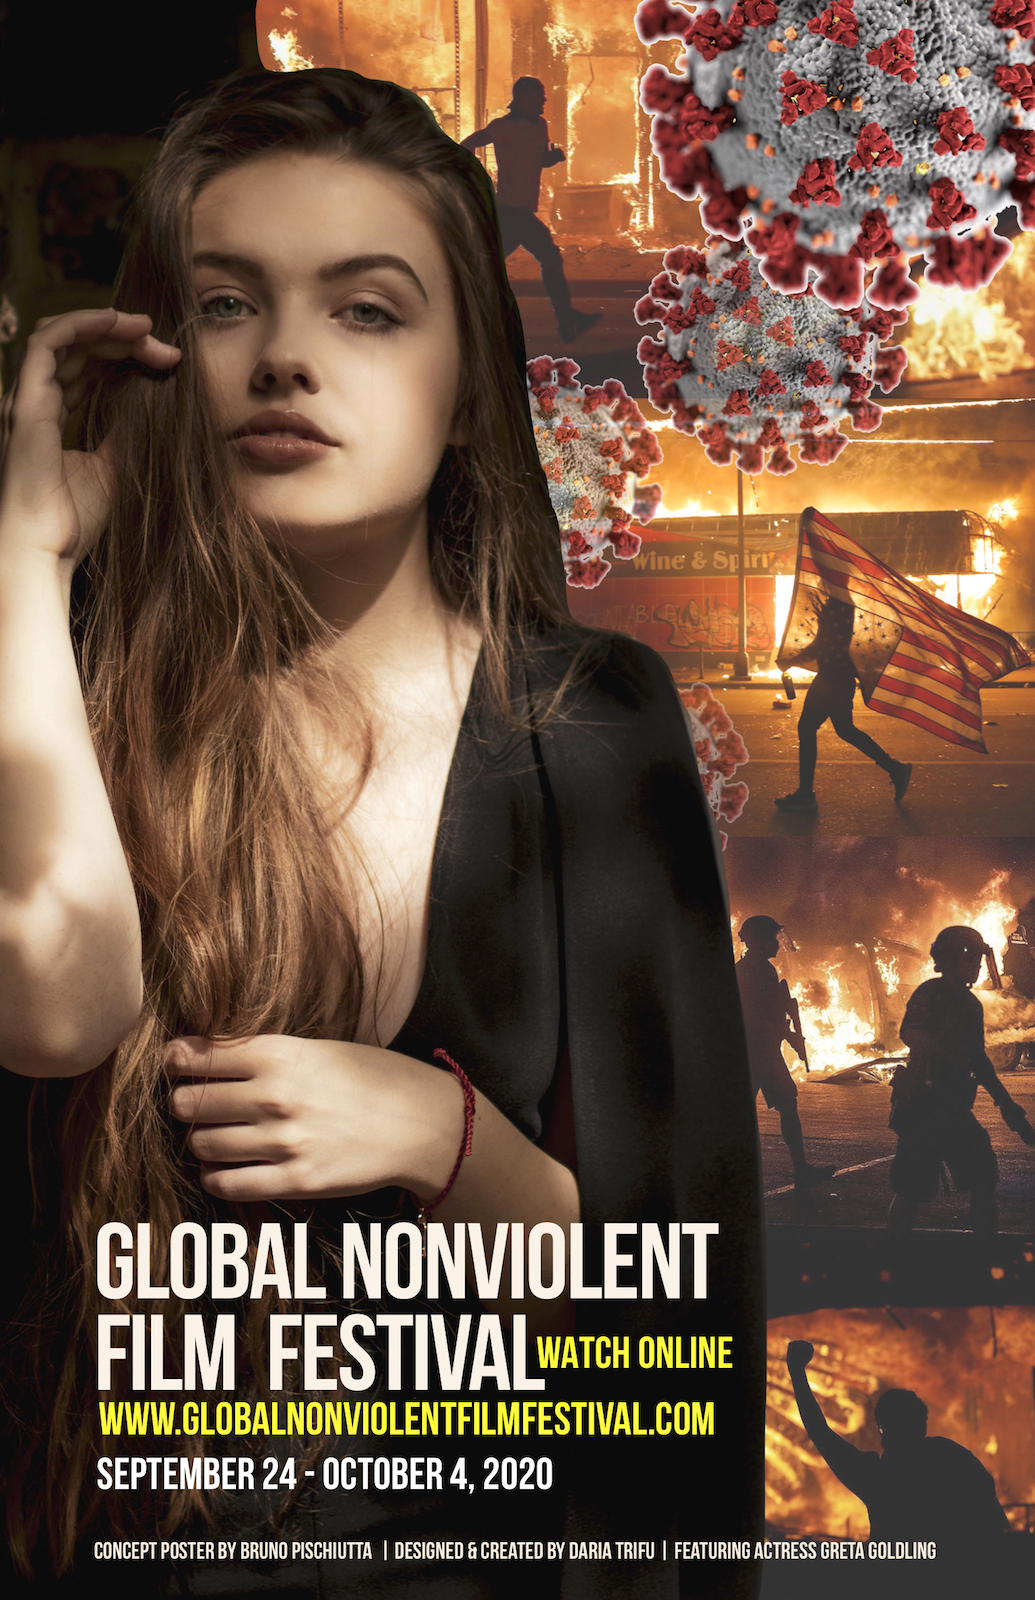 The 9th annual Global Nonviolent Film Festival is getting started today. If you're a filmmaker, you need to attend this one of a kind festival.